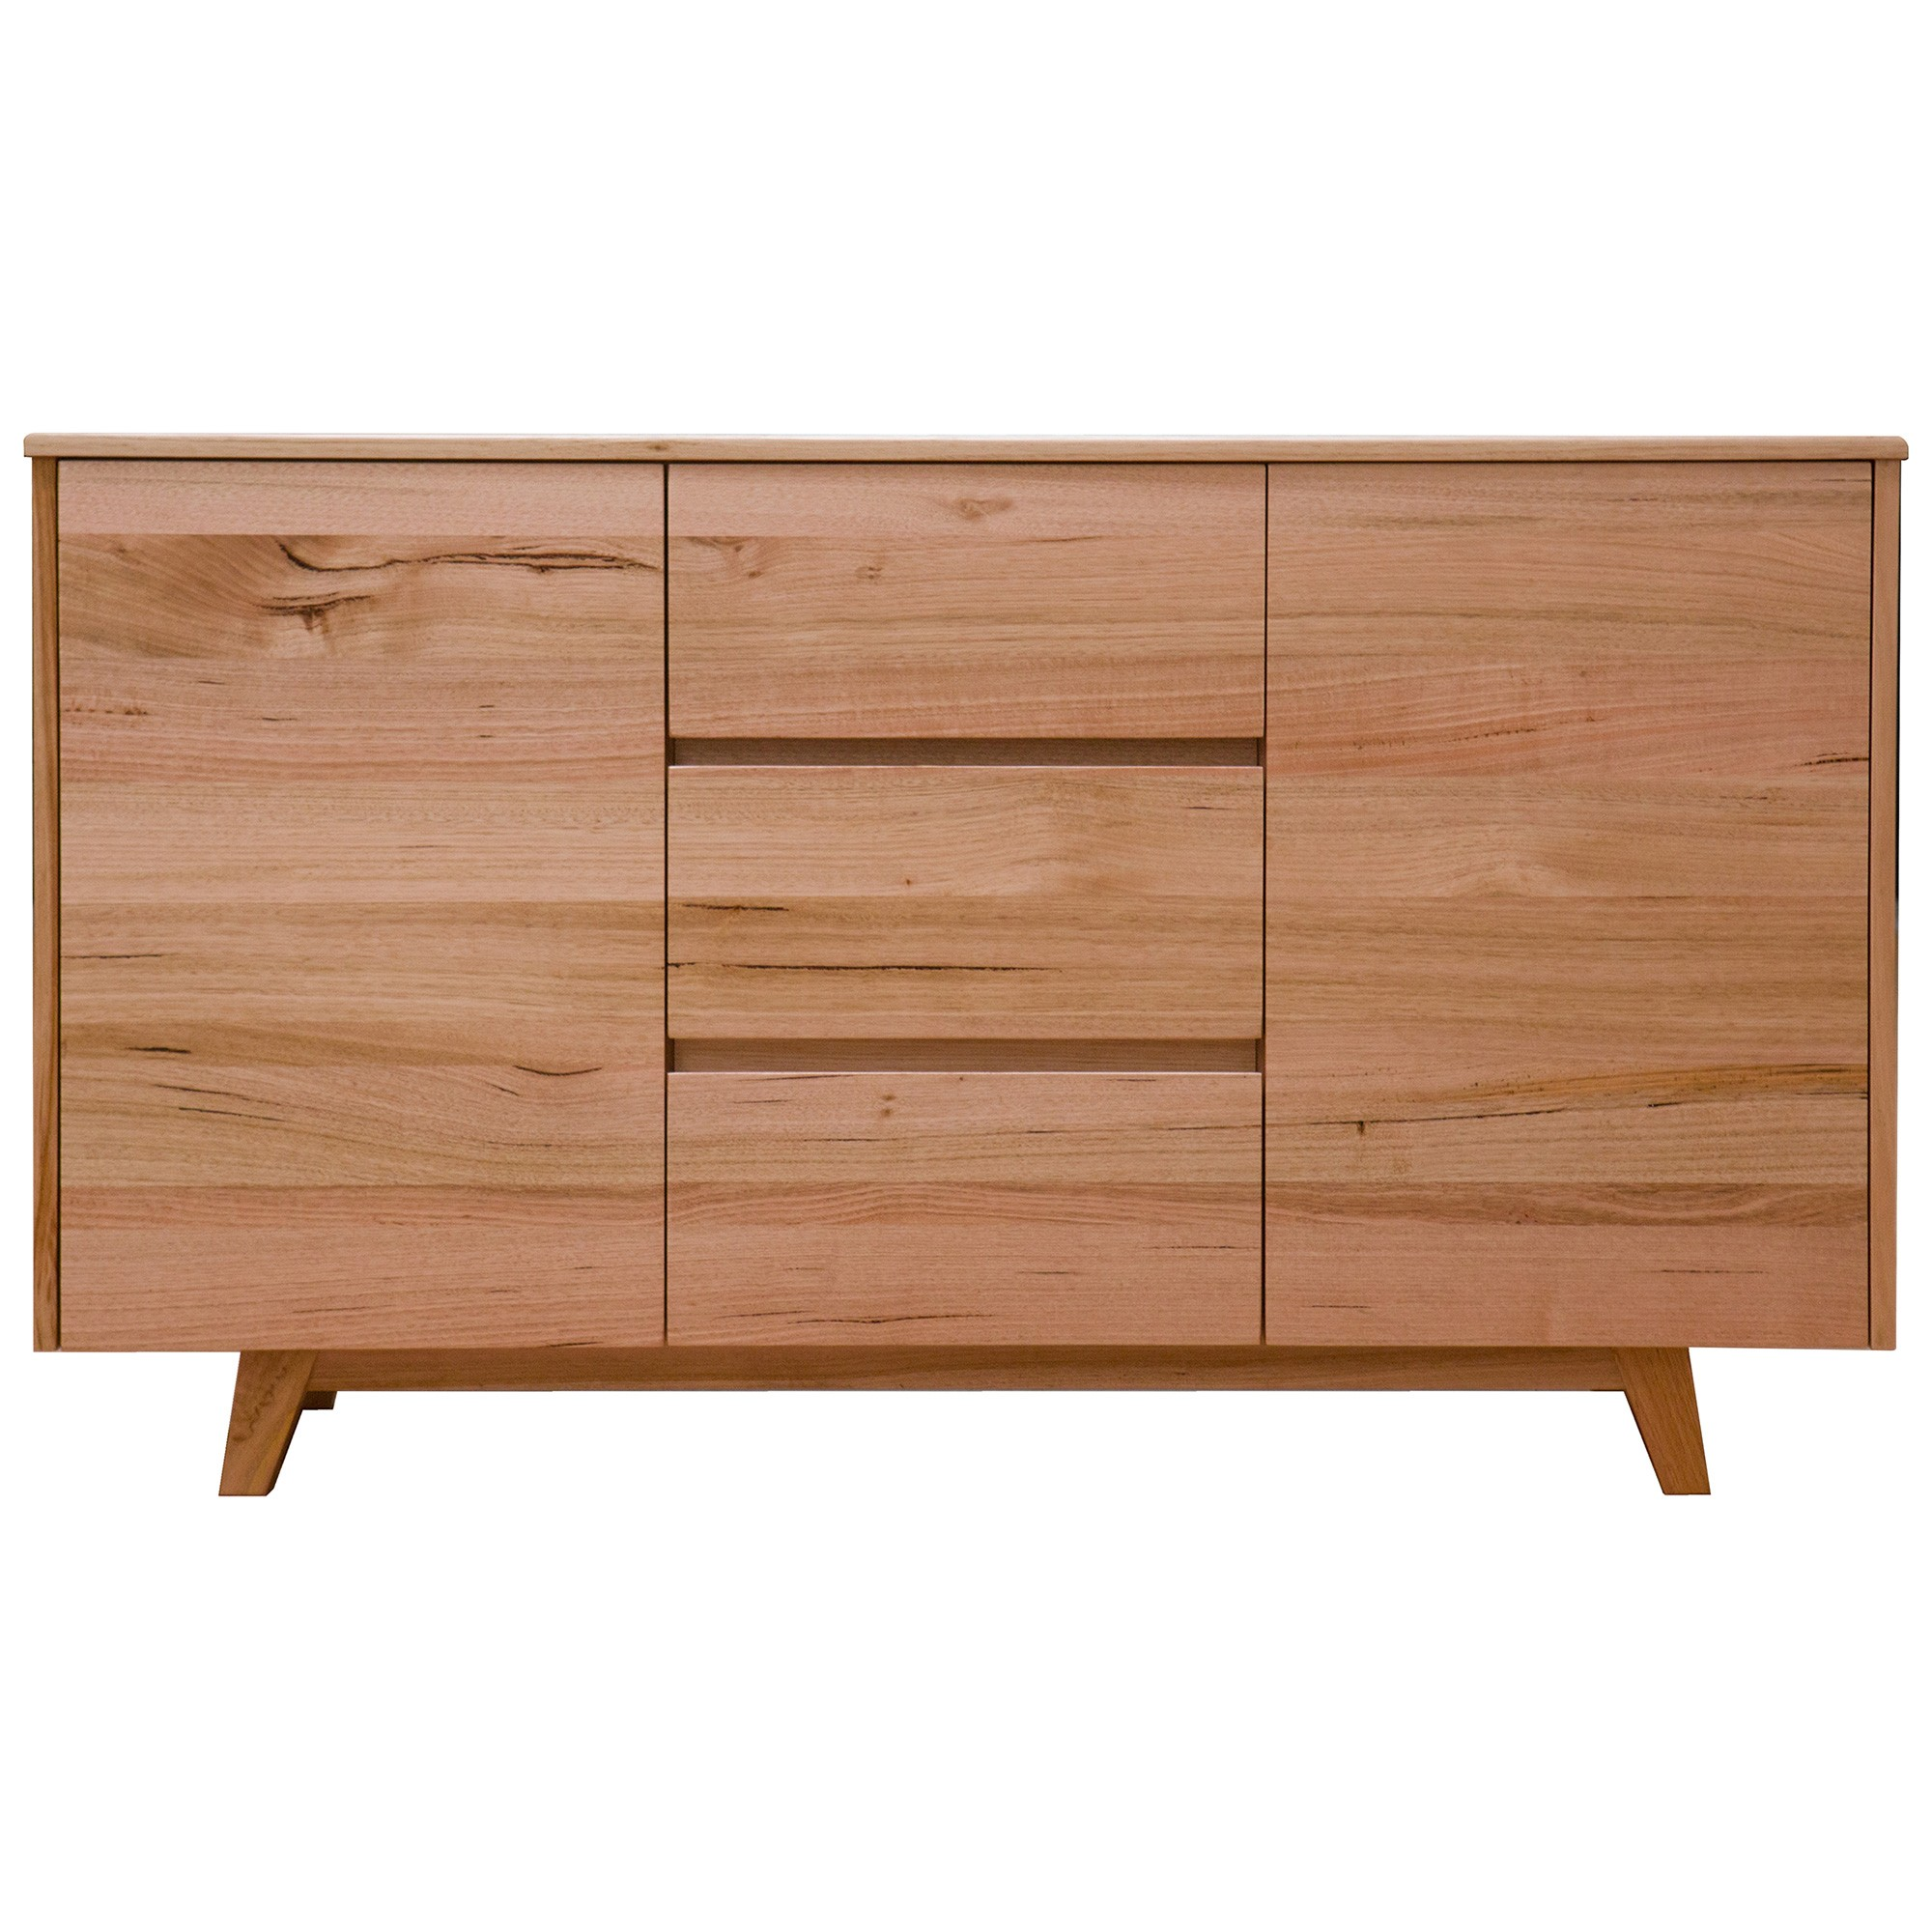 Wade Tasmanian Oak Timber 2 Door 3 Drawer Buffet Table, 150cm